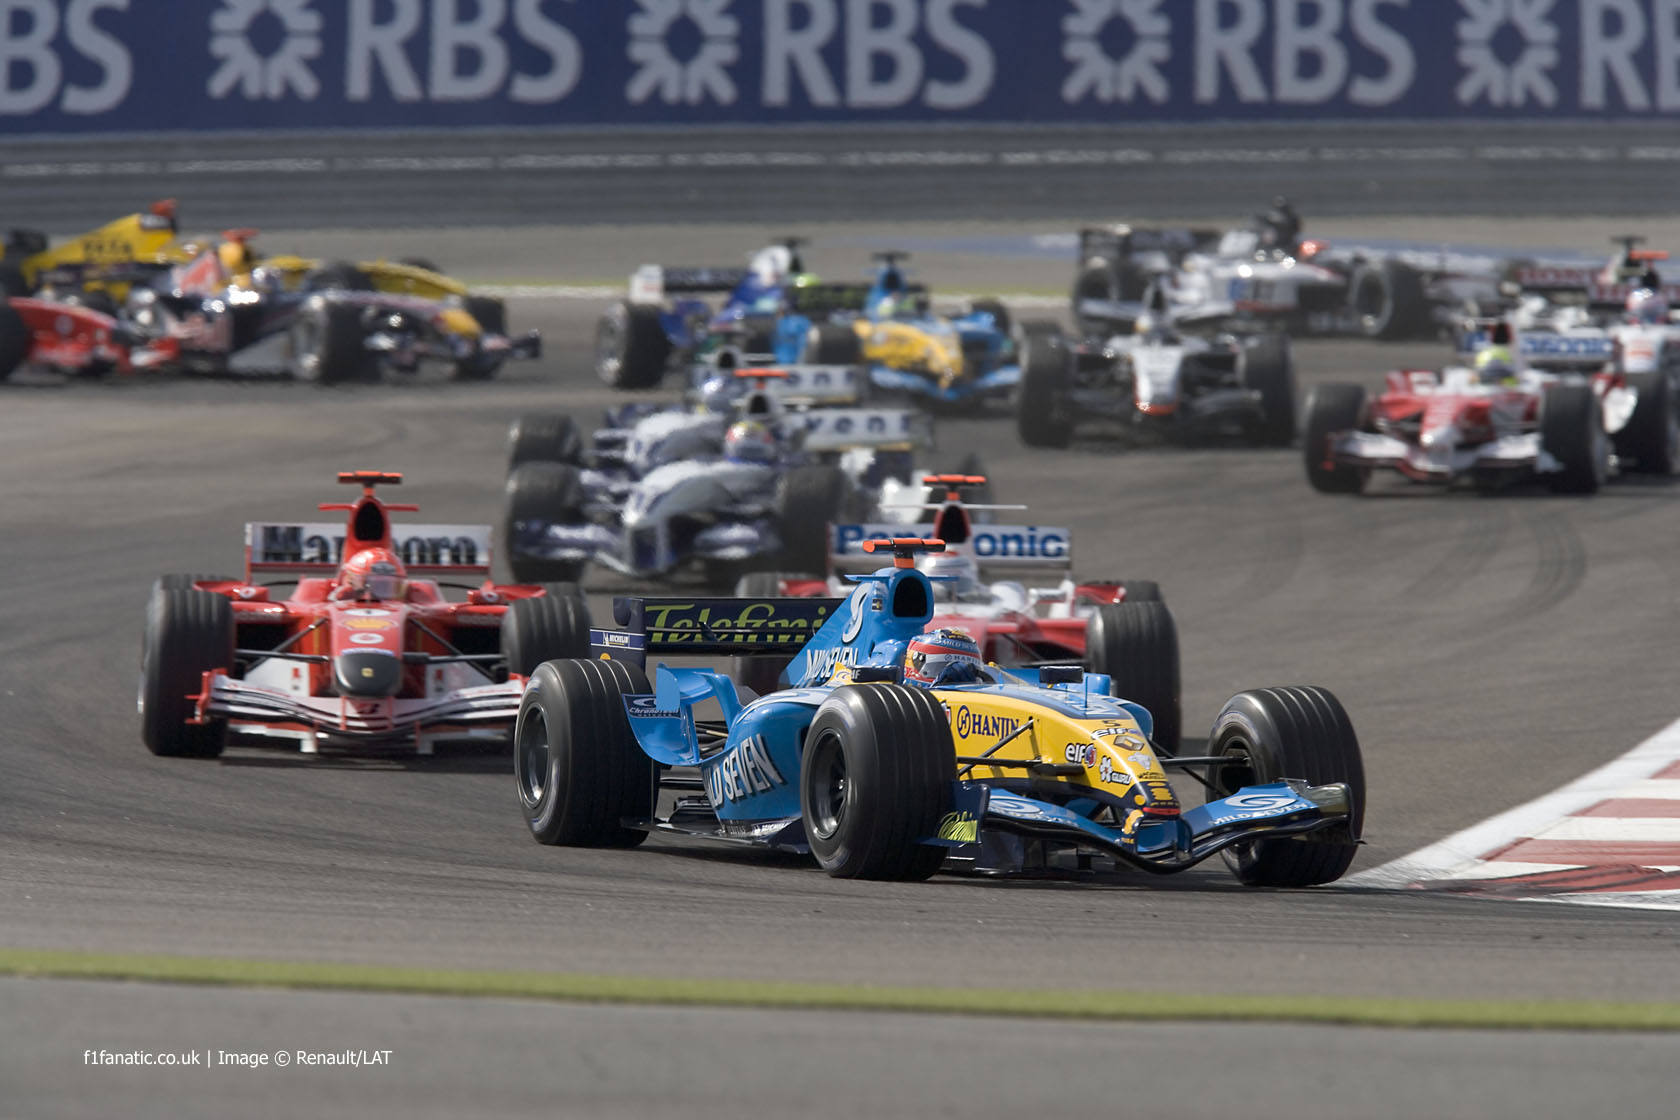 F1 2012 the best formula 1 game youtube